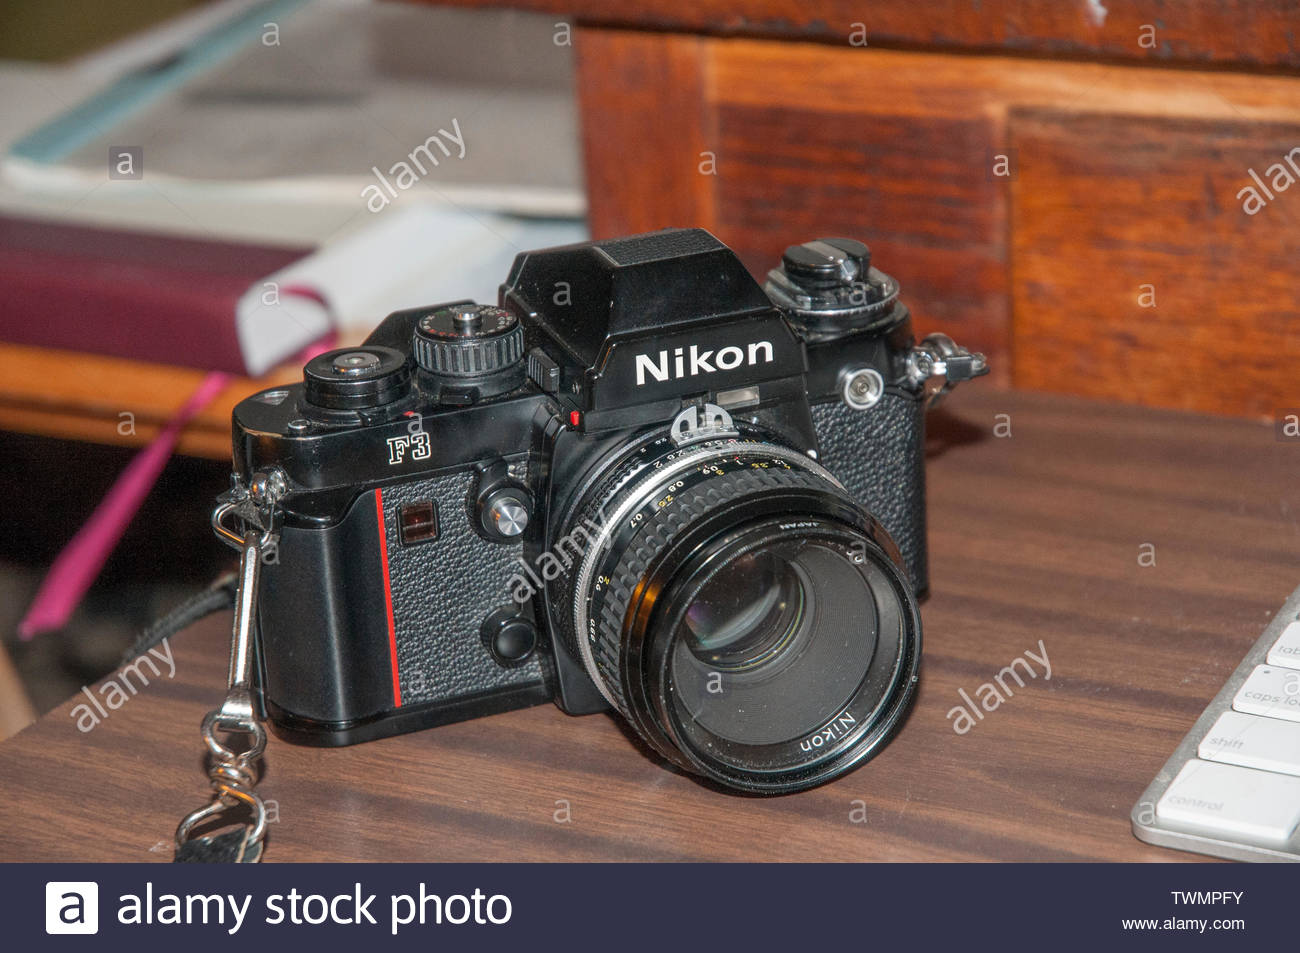 Nikon F3 film camera was Nikon's top professional camera from 1980 through 1988.  It remained in production until 2001. Stock Photo